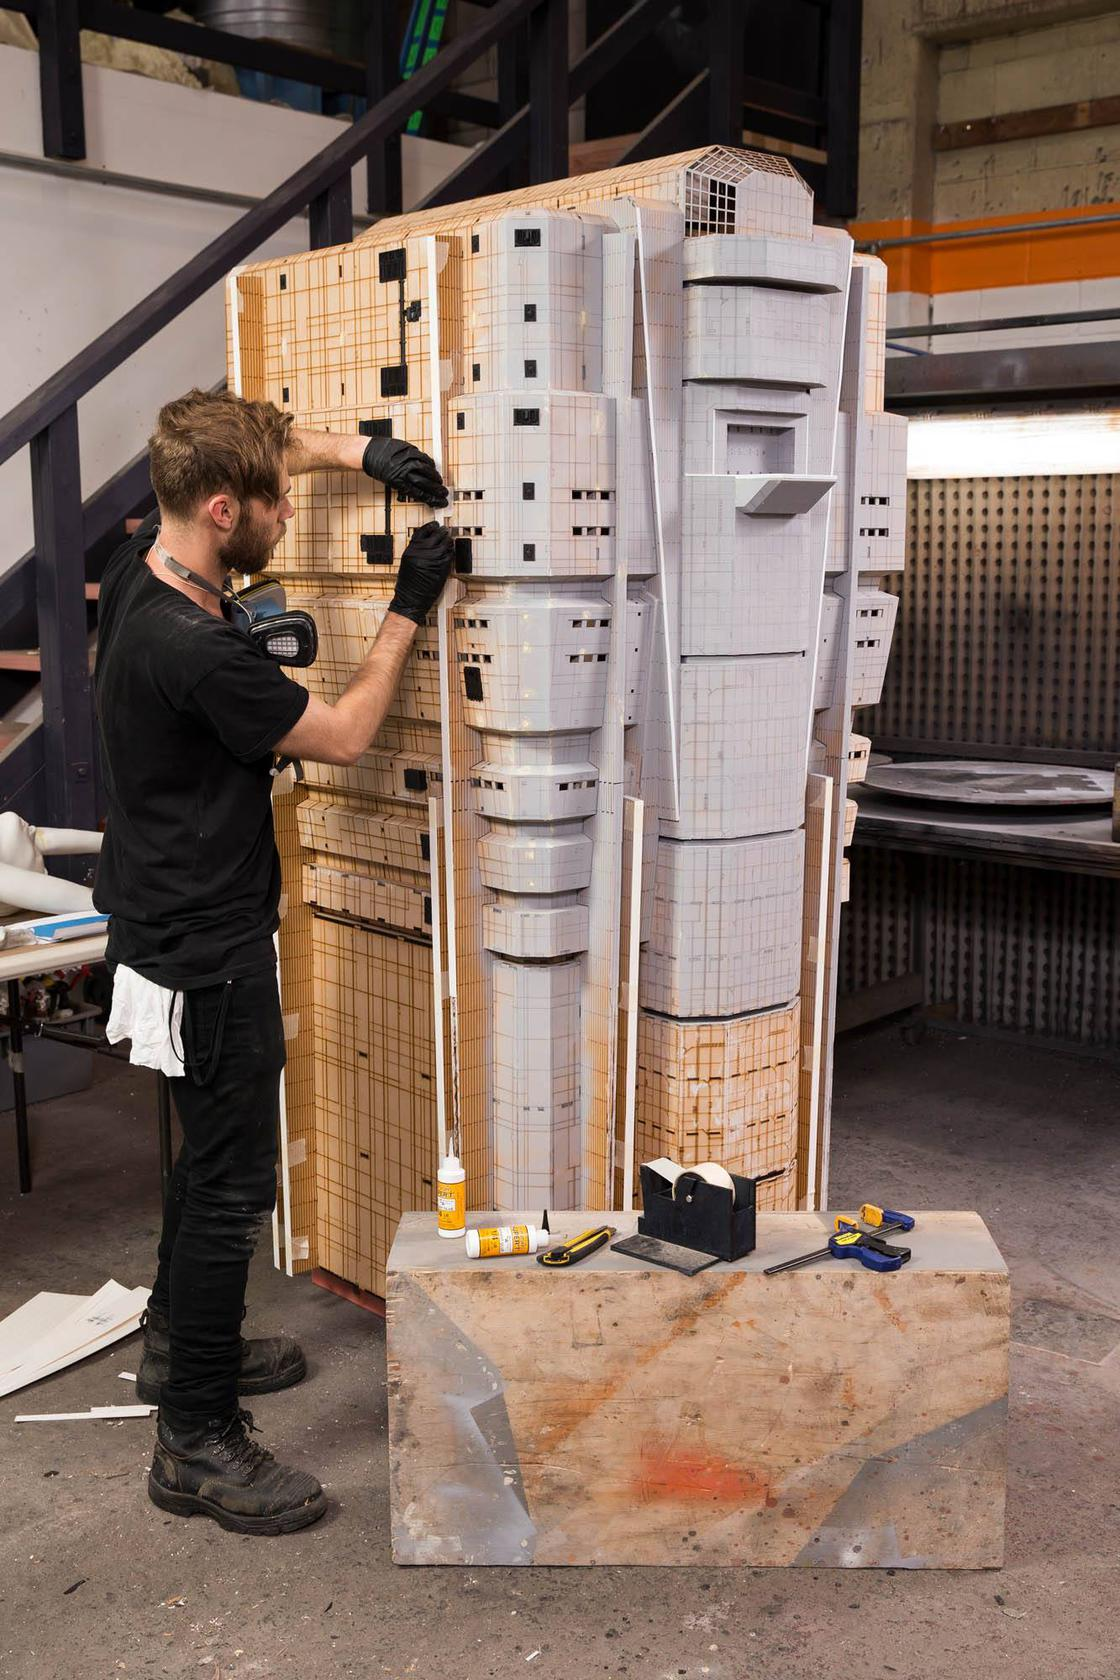 Blade Runner 2049 – The making of the impressive models used in the movie